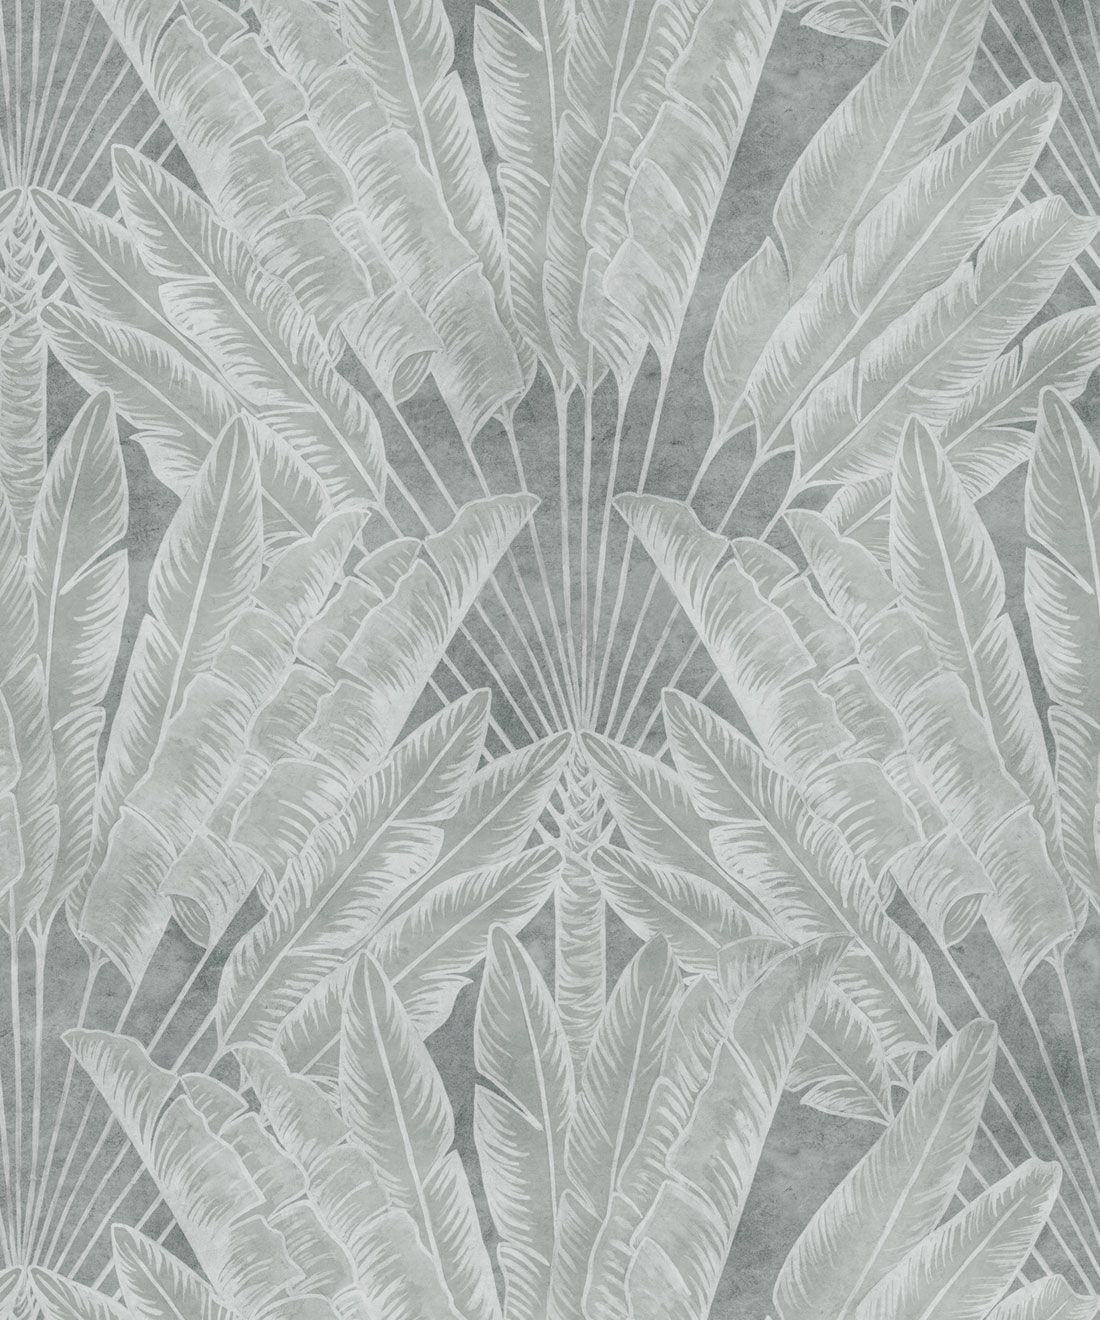 Travelers Palm Wallpaper (Two Roll Set)